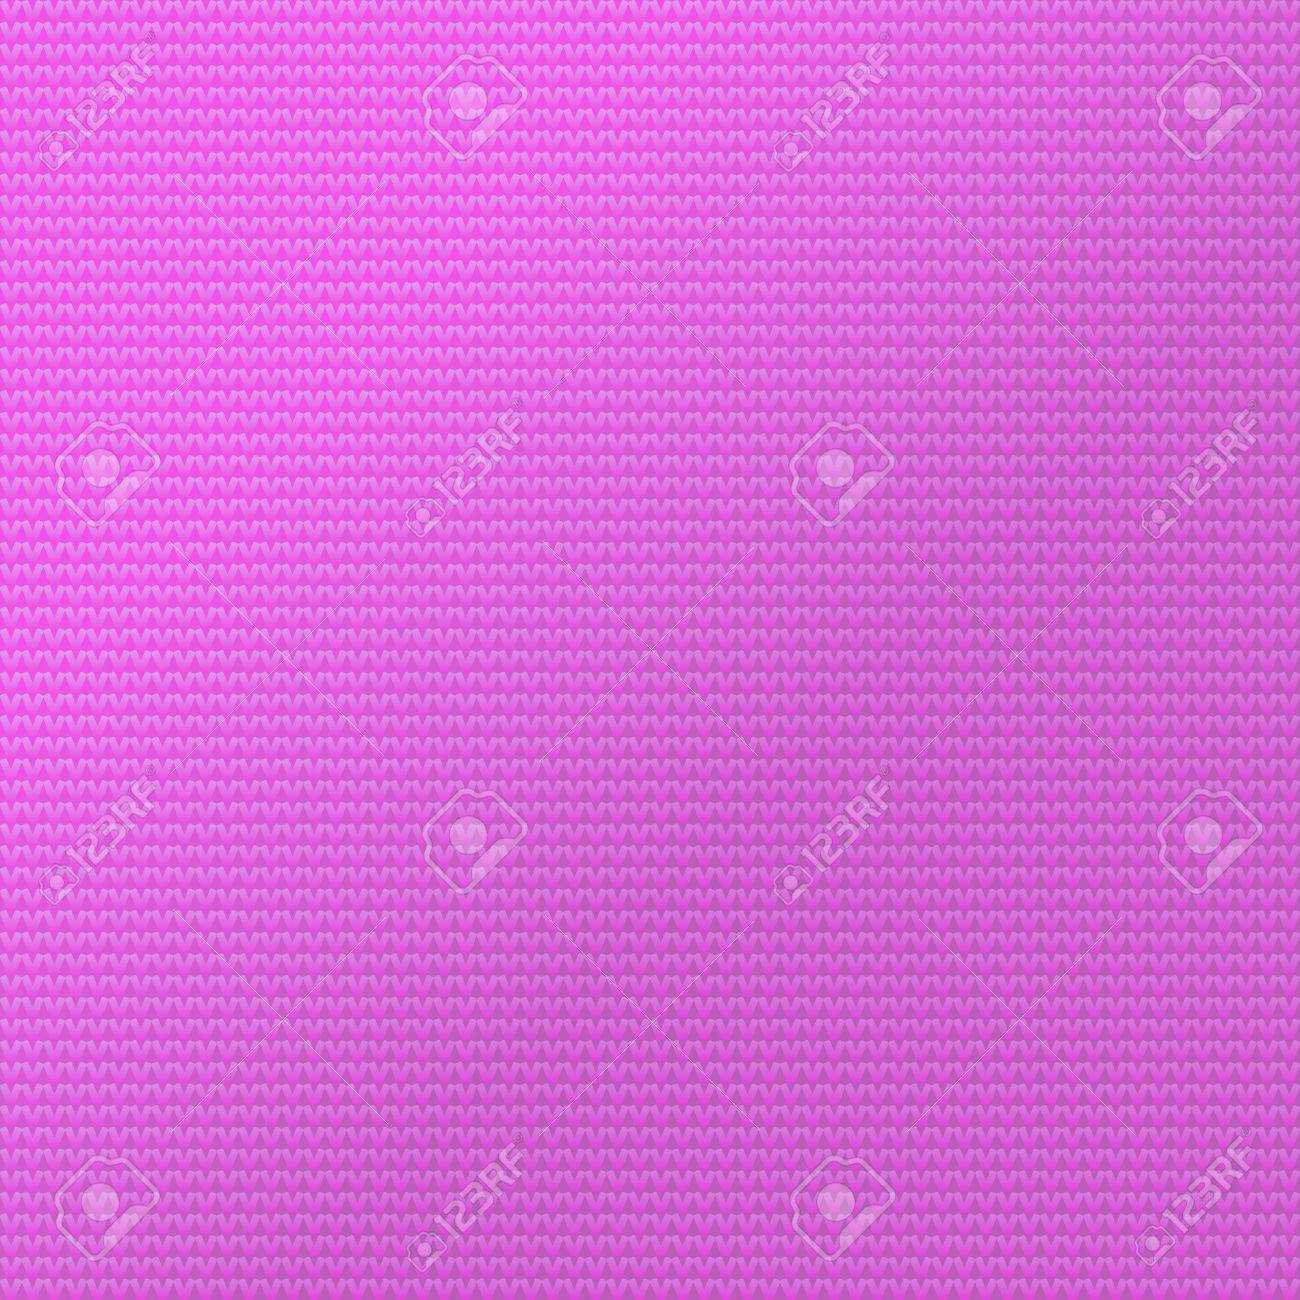 Knit Pattern Background. Sweater Fabric Pink Color Vector ...